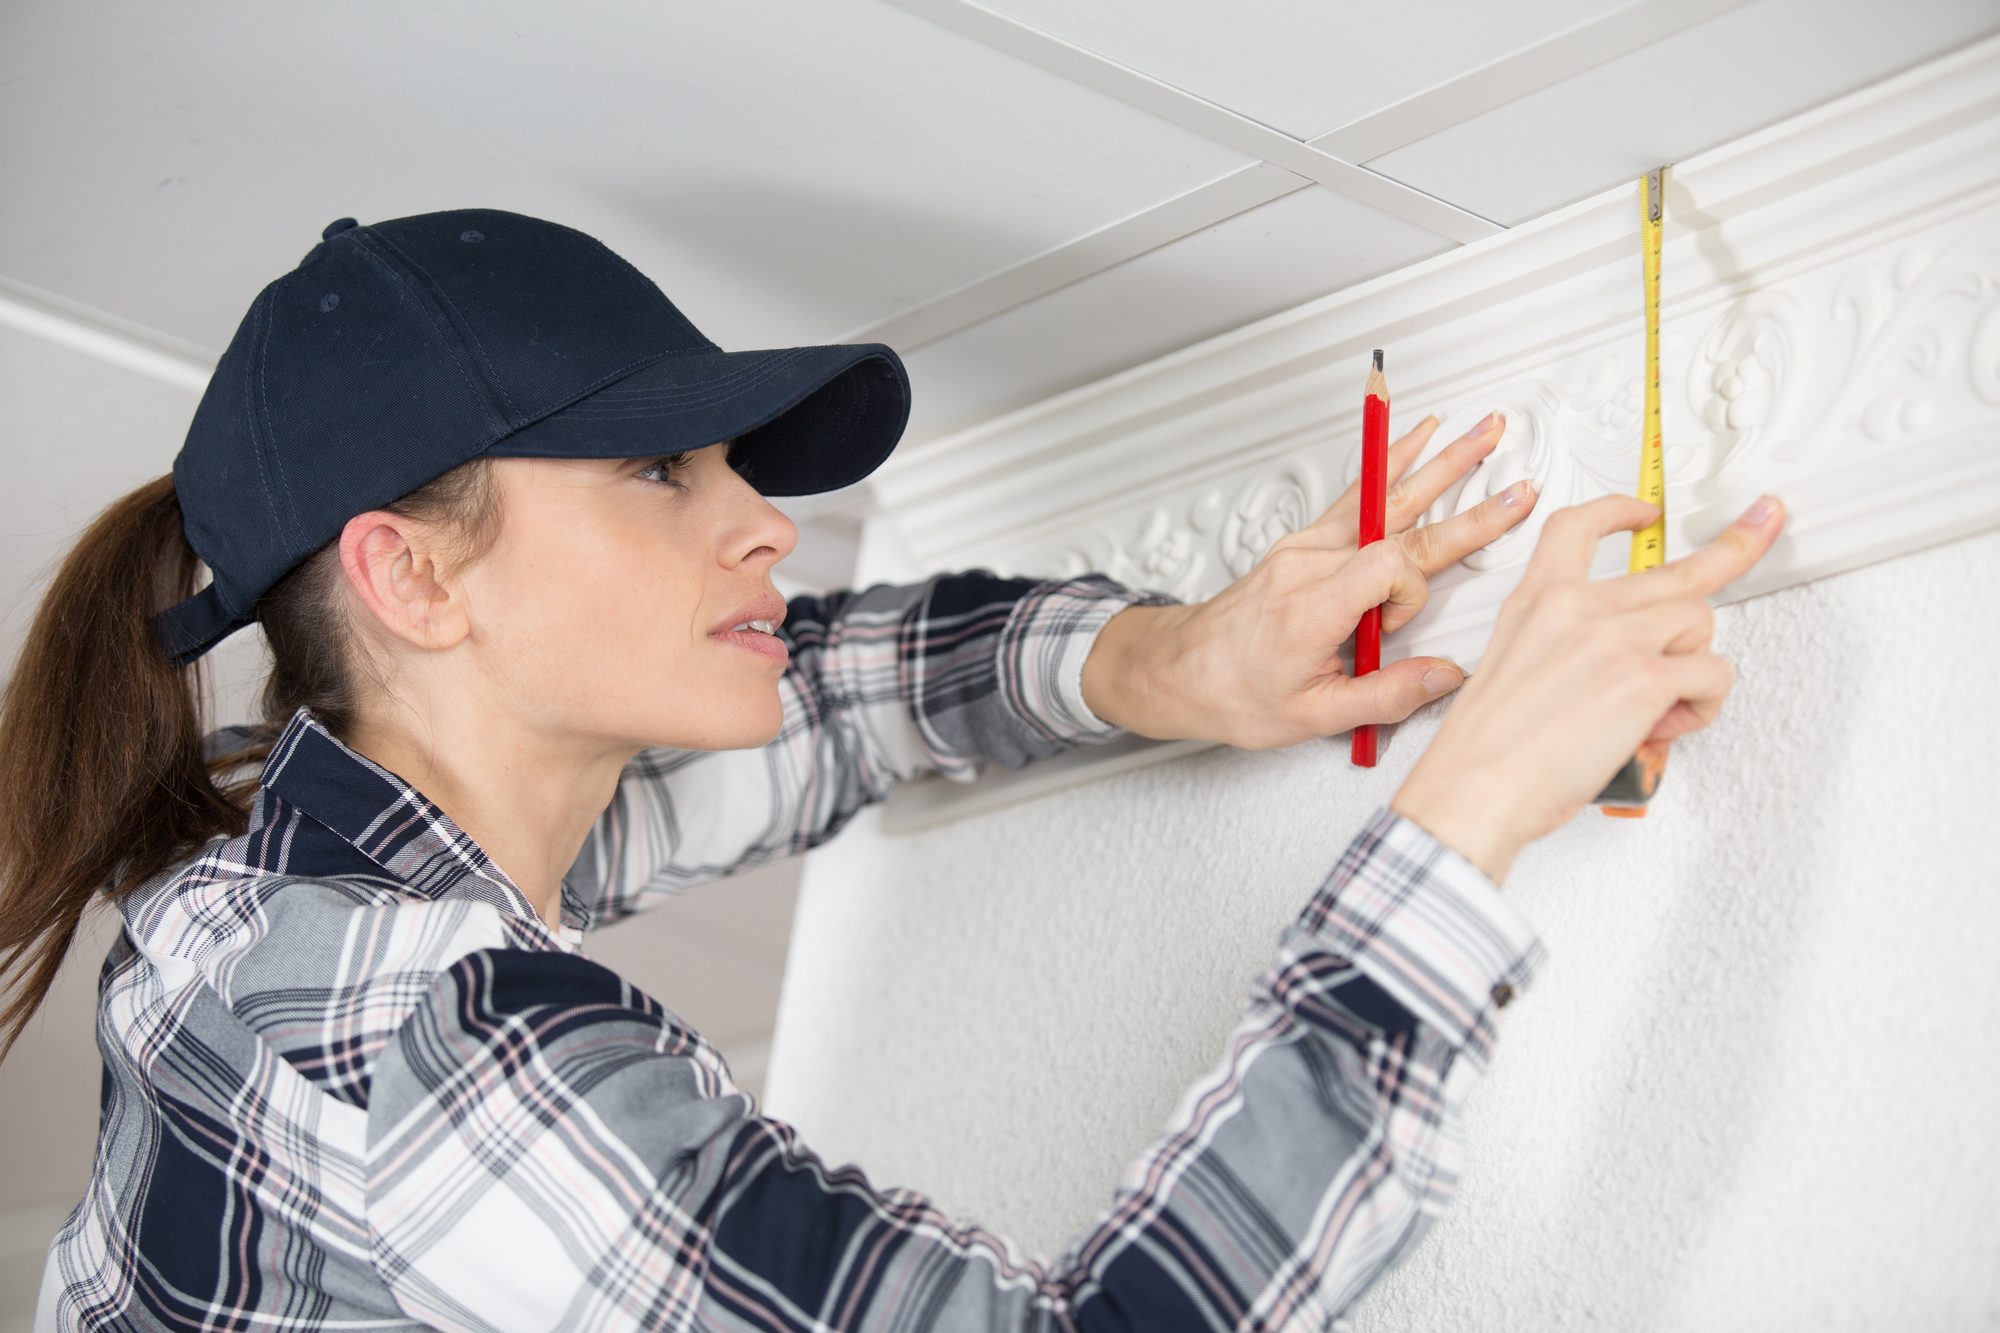 Cornices & Coving: All you need to know